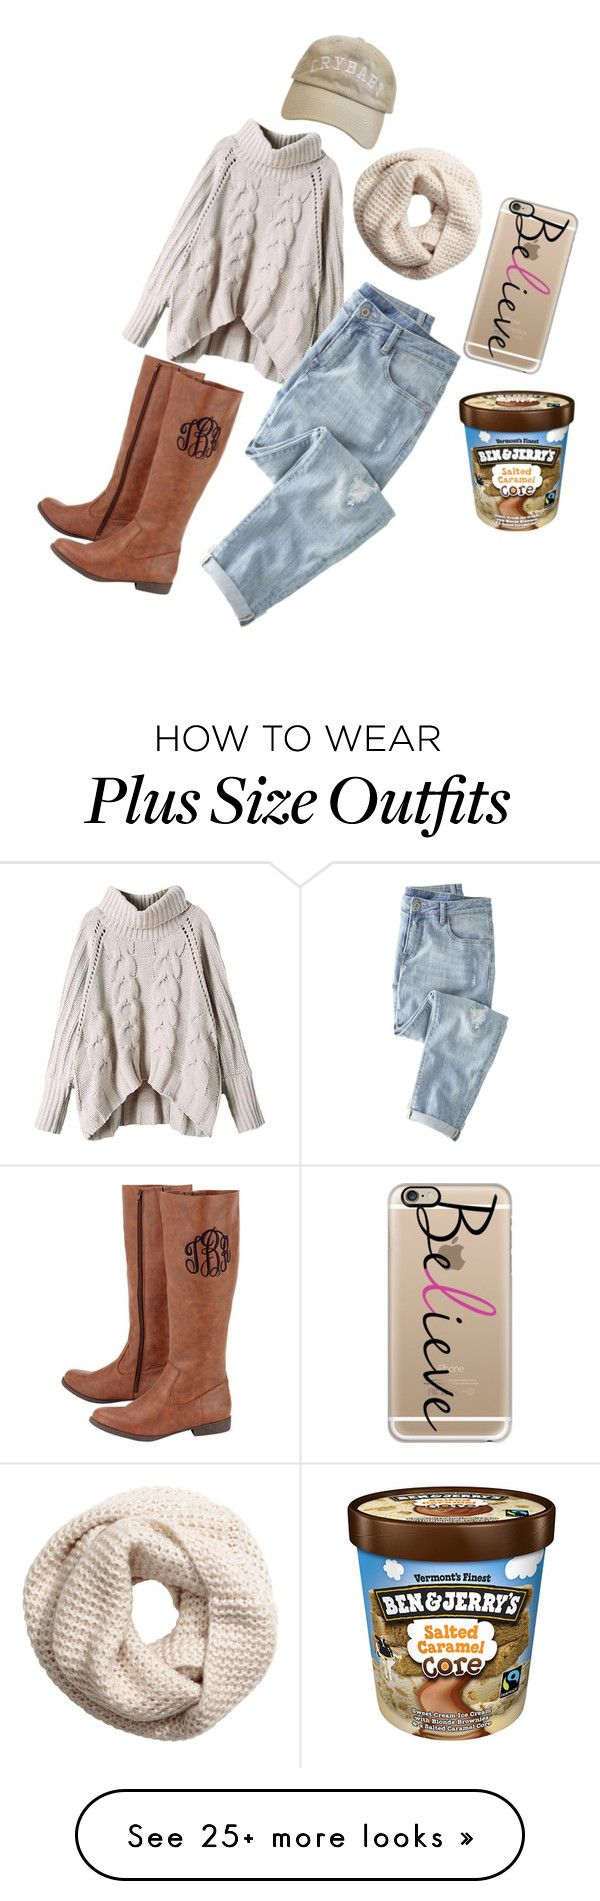 """Untitled #806"" by sylviabunny on Polyvore featuring Wrap, H&M and Casetify"